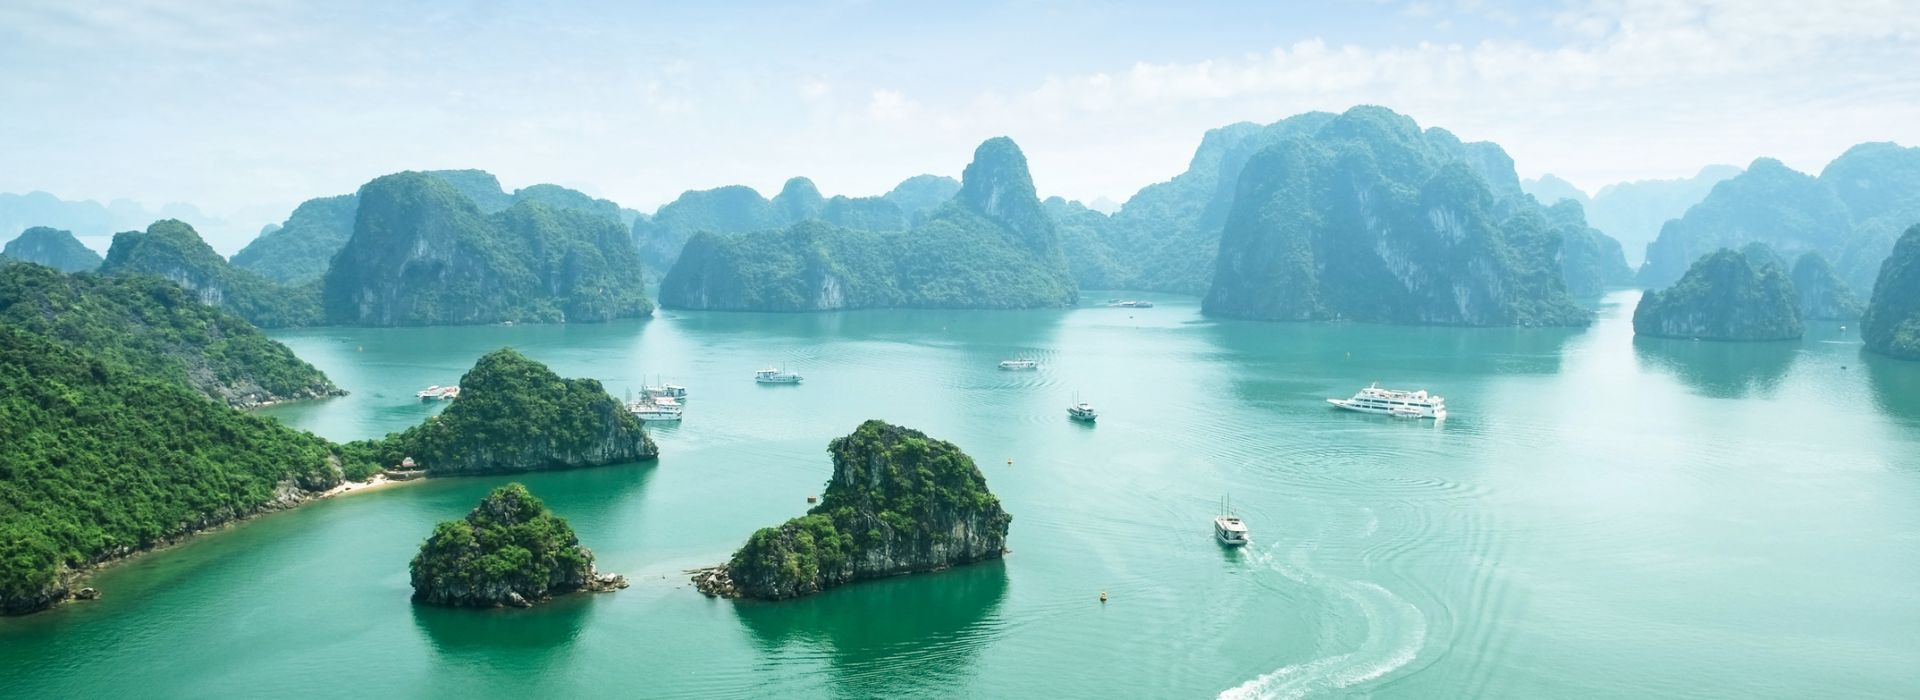 Wildlife, landscapes and nature Tours in Halong Bay